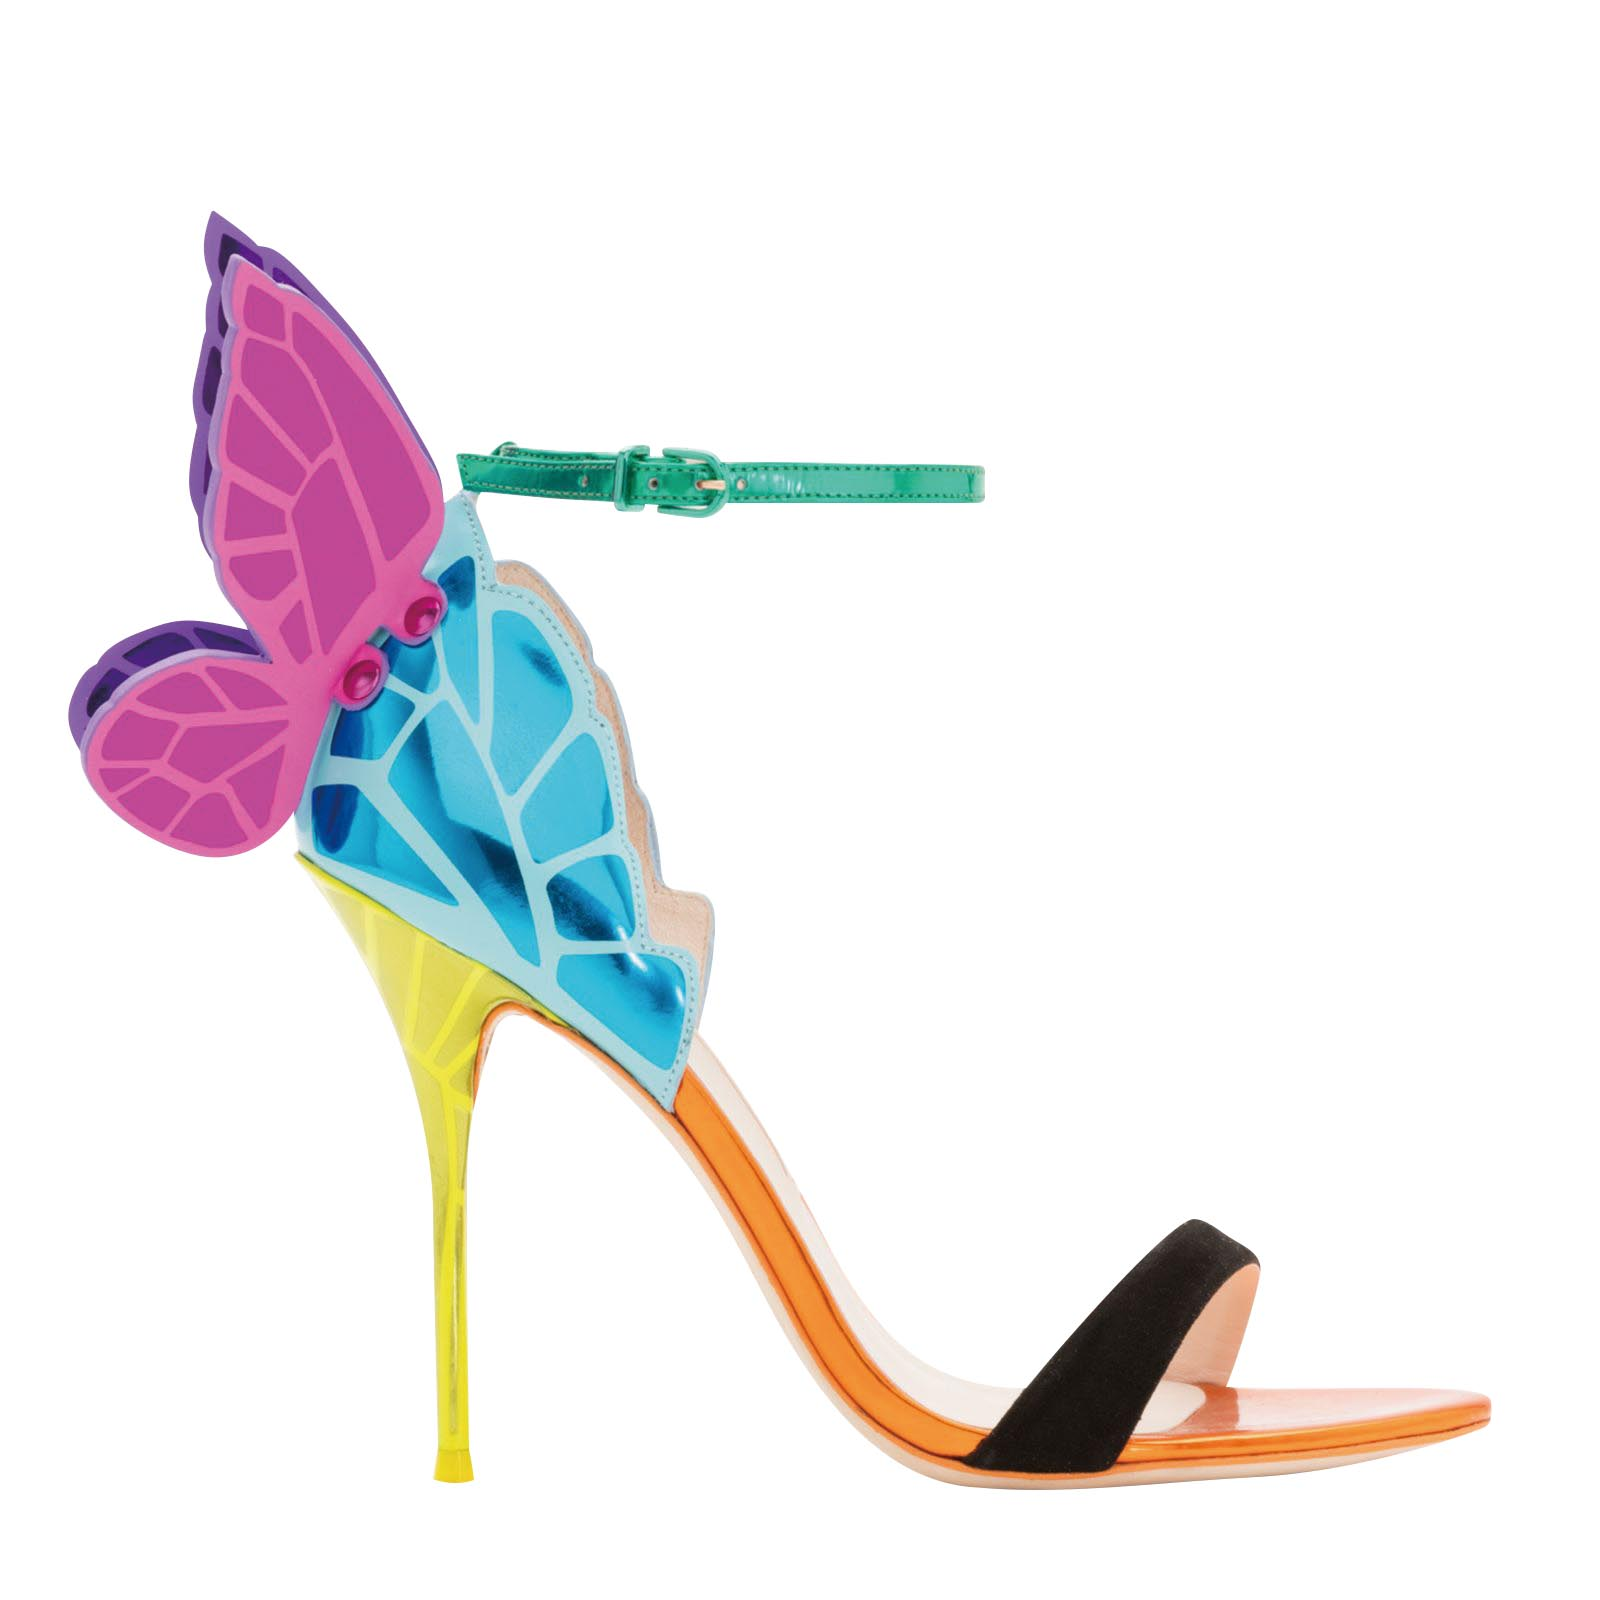 Chiara butterfly wing sandal, Sophia Webster